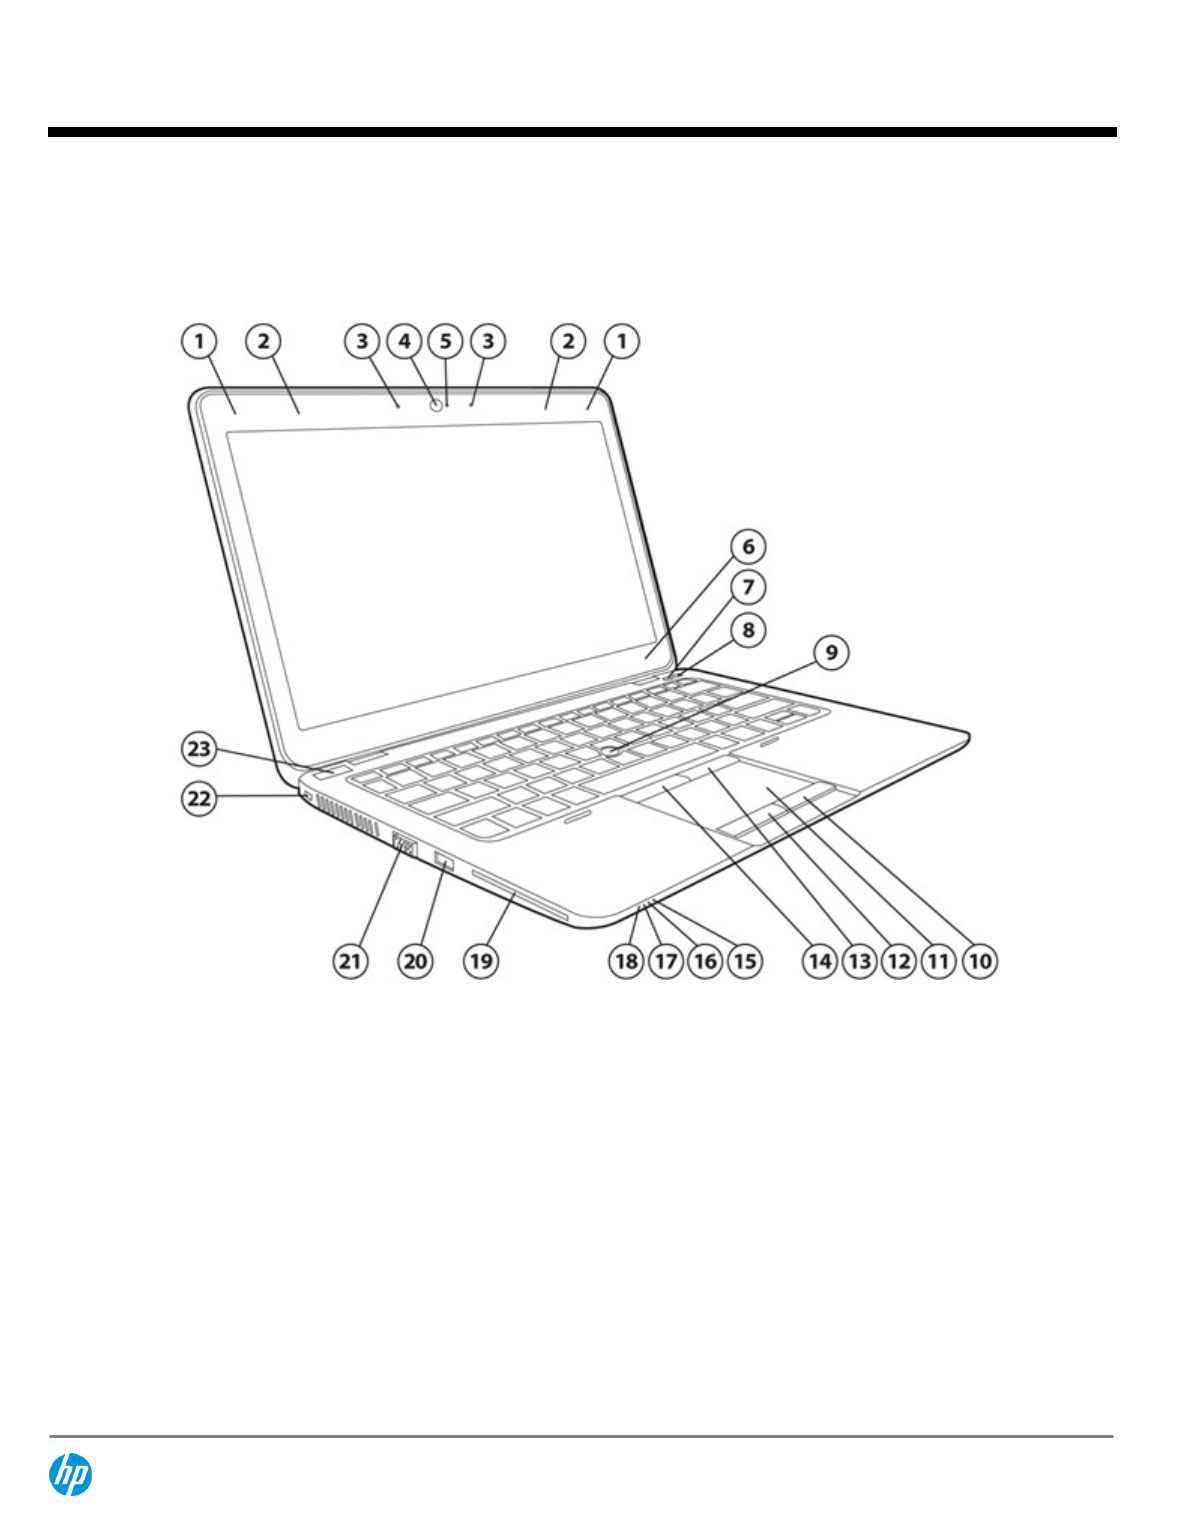 HP (Hewlett-Packard) Laptop F2Q24UTABA User Guide